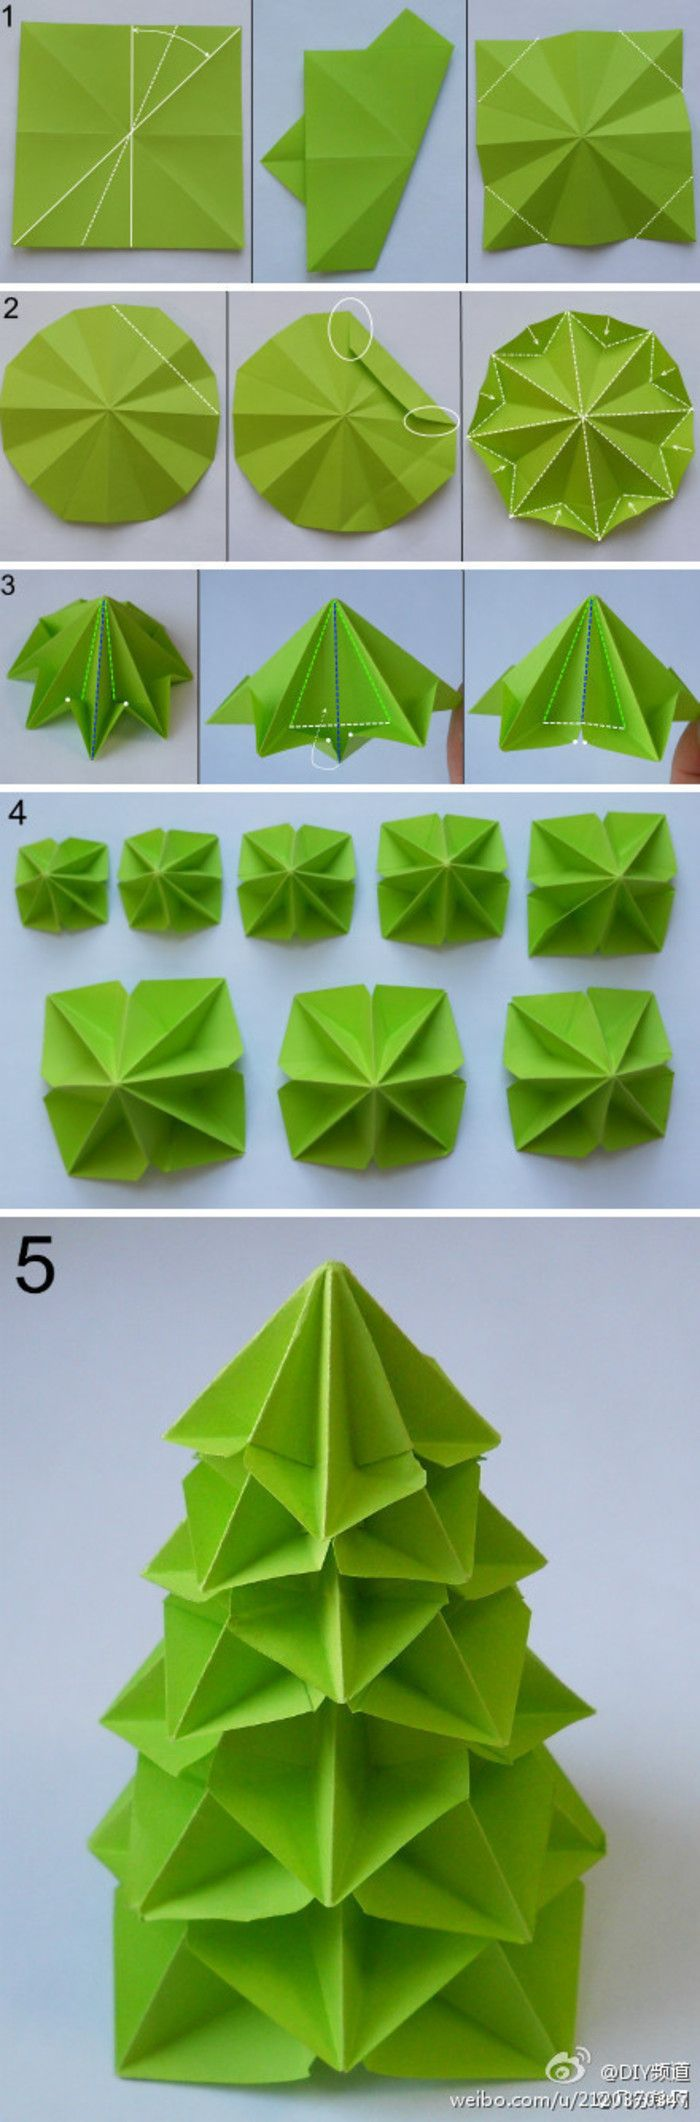 How to make a origami Poinsettia flower - YouTube | 2122x700